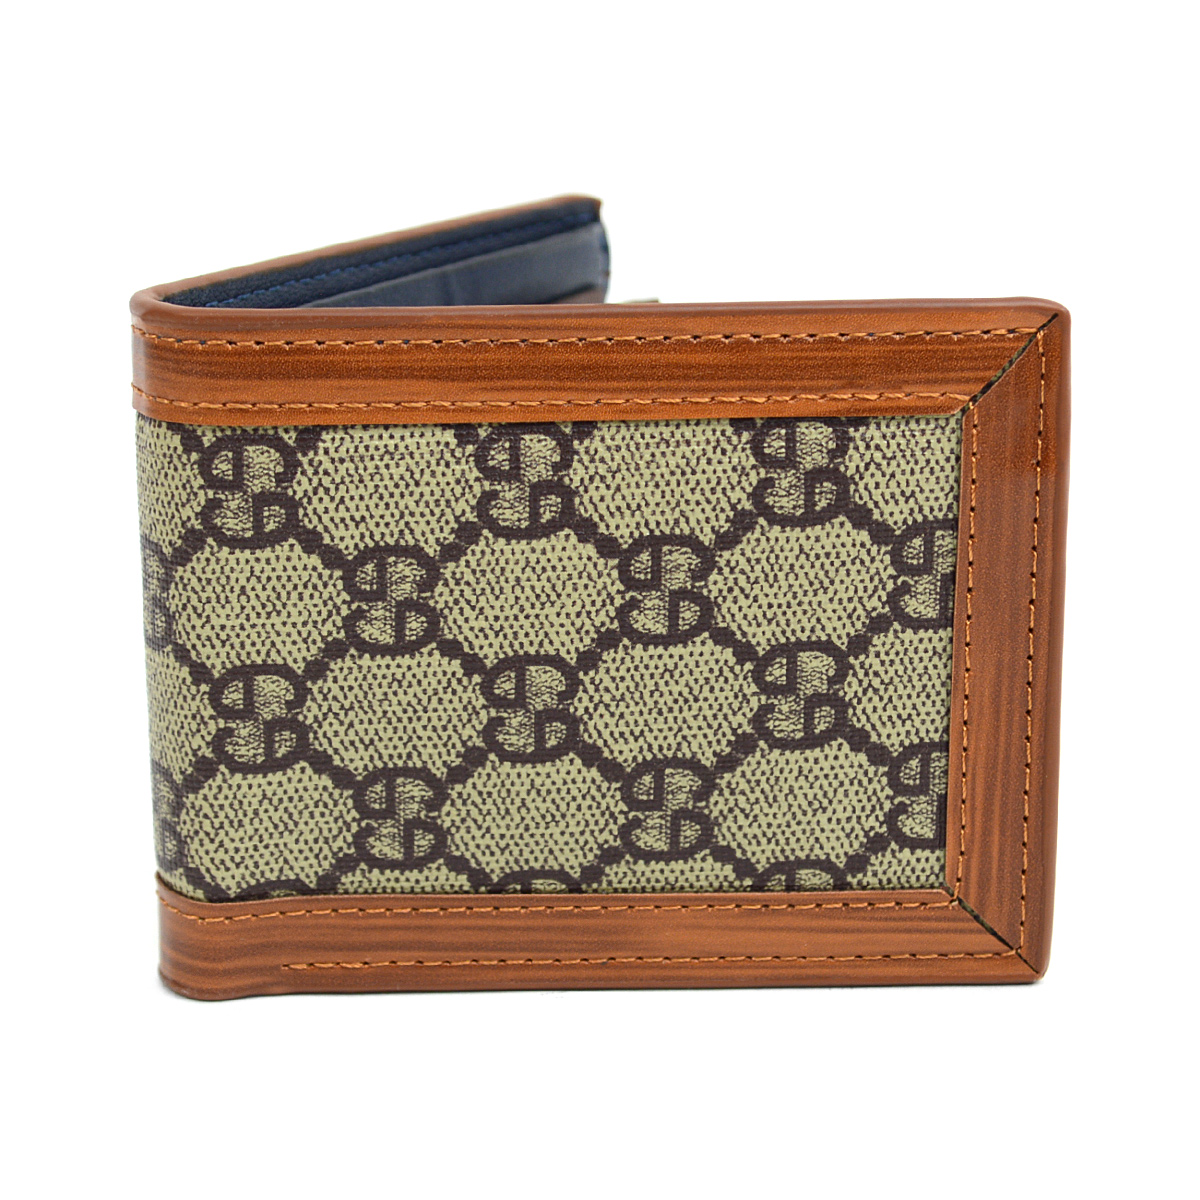 Bi-Fold Designer-Print Wallet with LEATHER Trim MLW5181